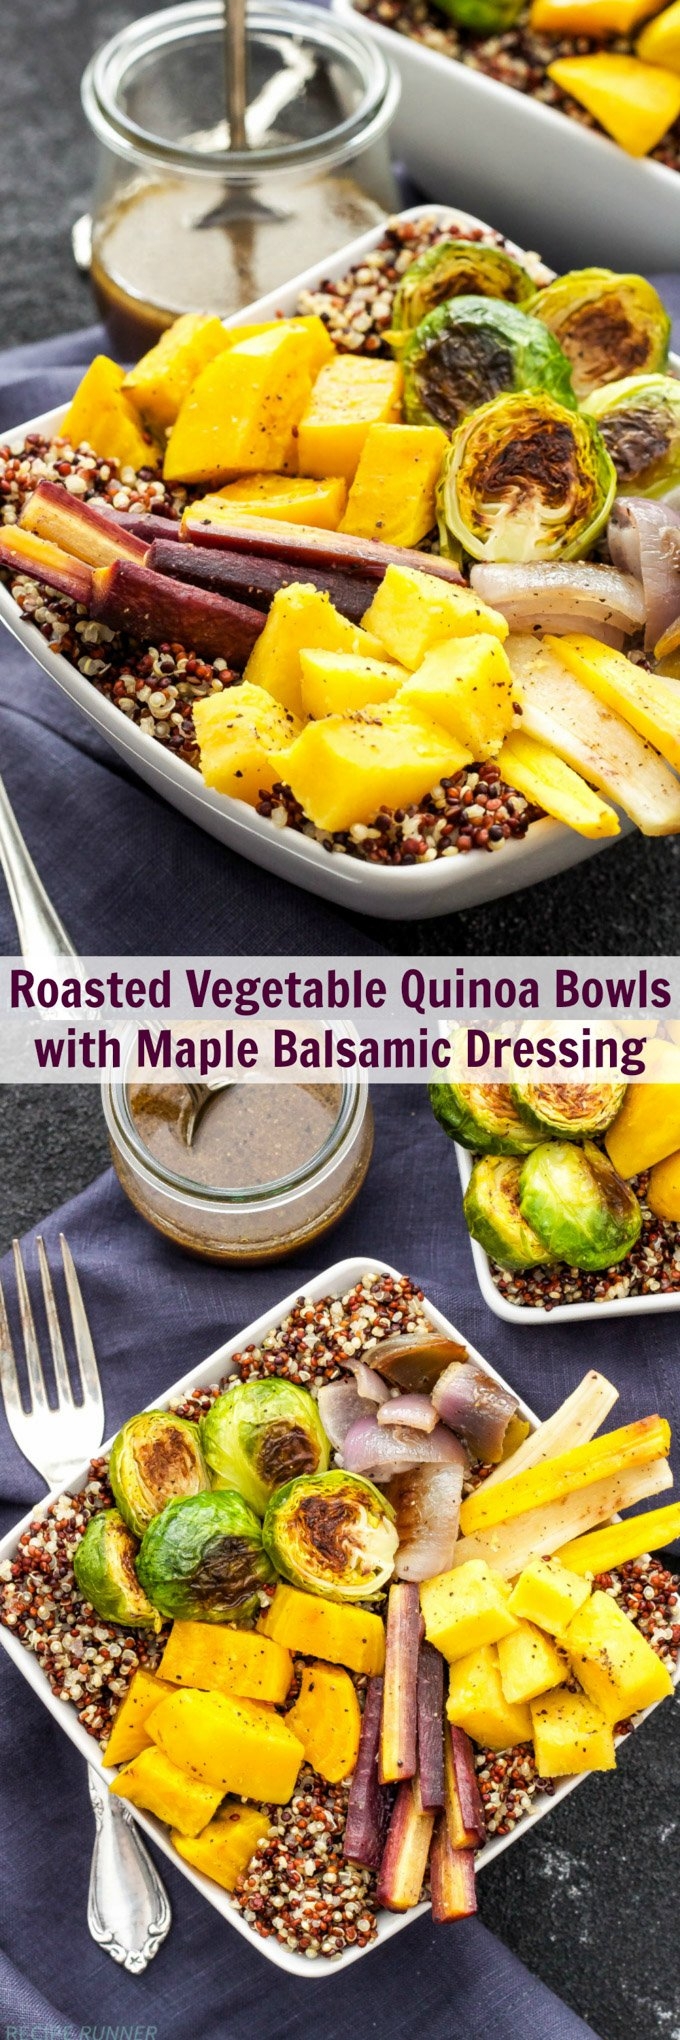 Roasted Vegetable Quinoa Bowls | Quinoa bowls topped with roasted vegetables and maple balsamic dressing are a healthy, gluten-free and vegan dinner you need to try!